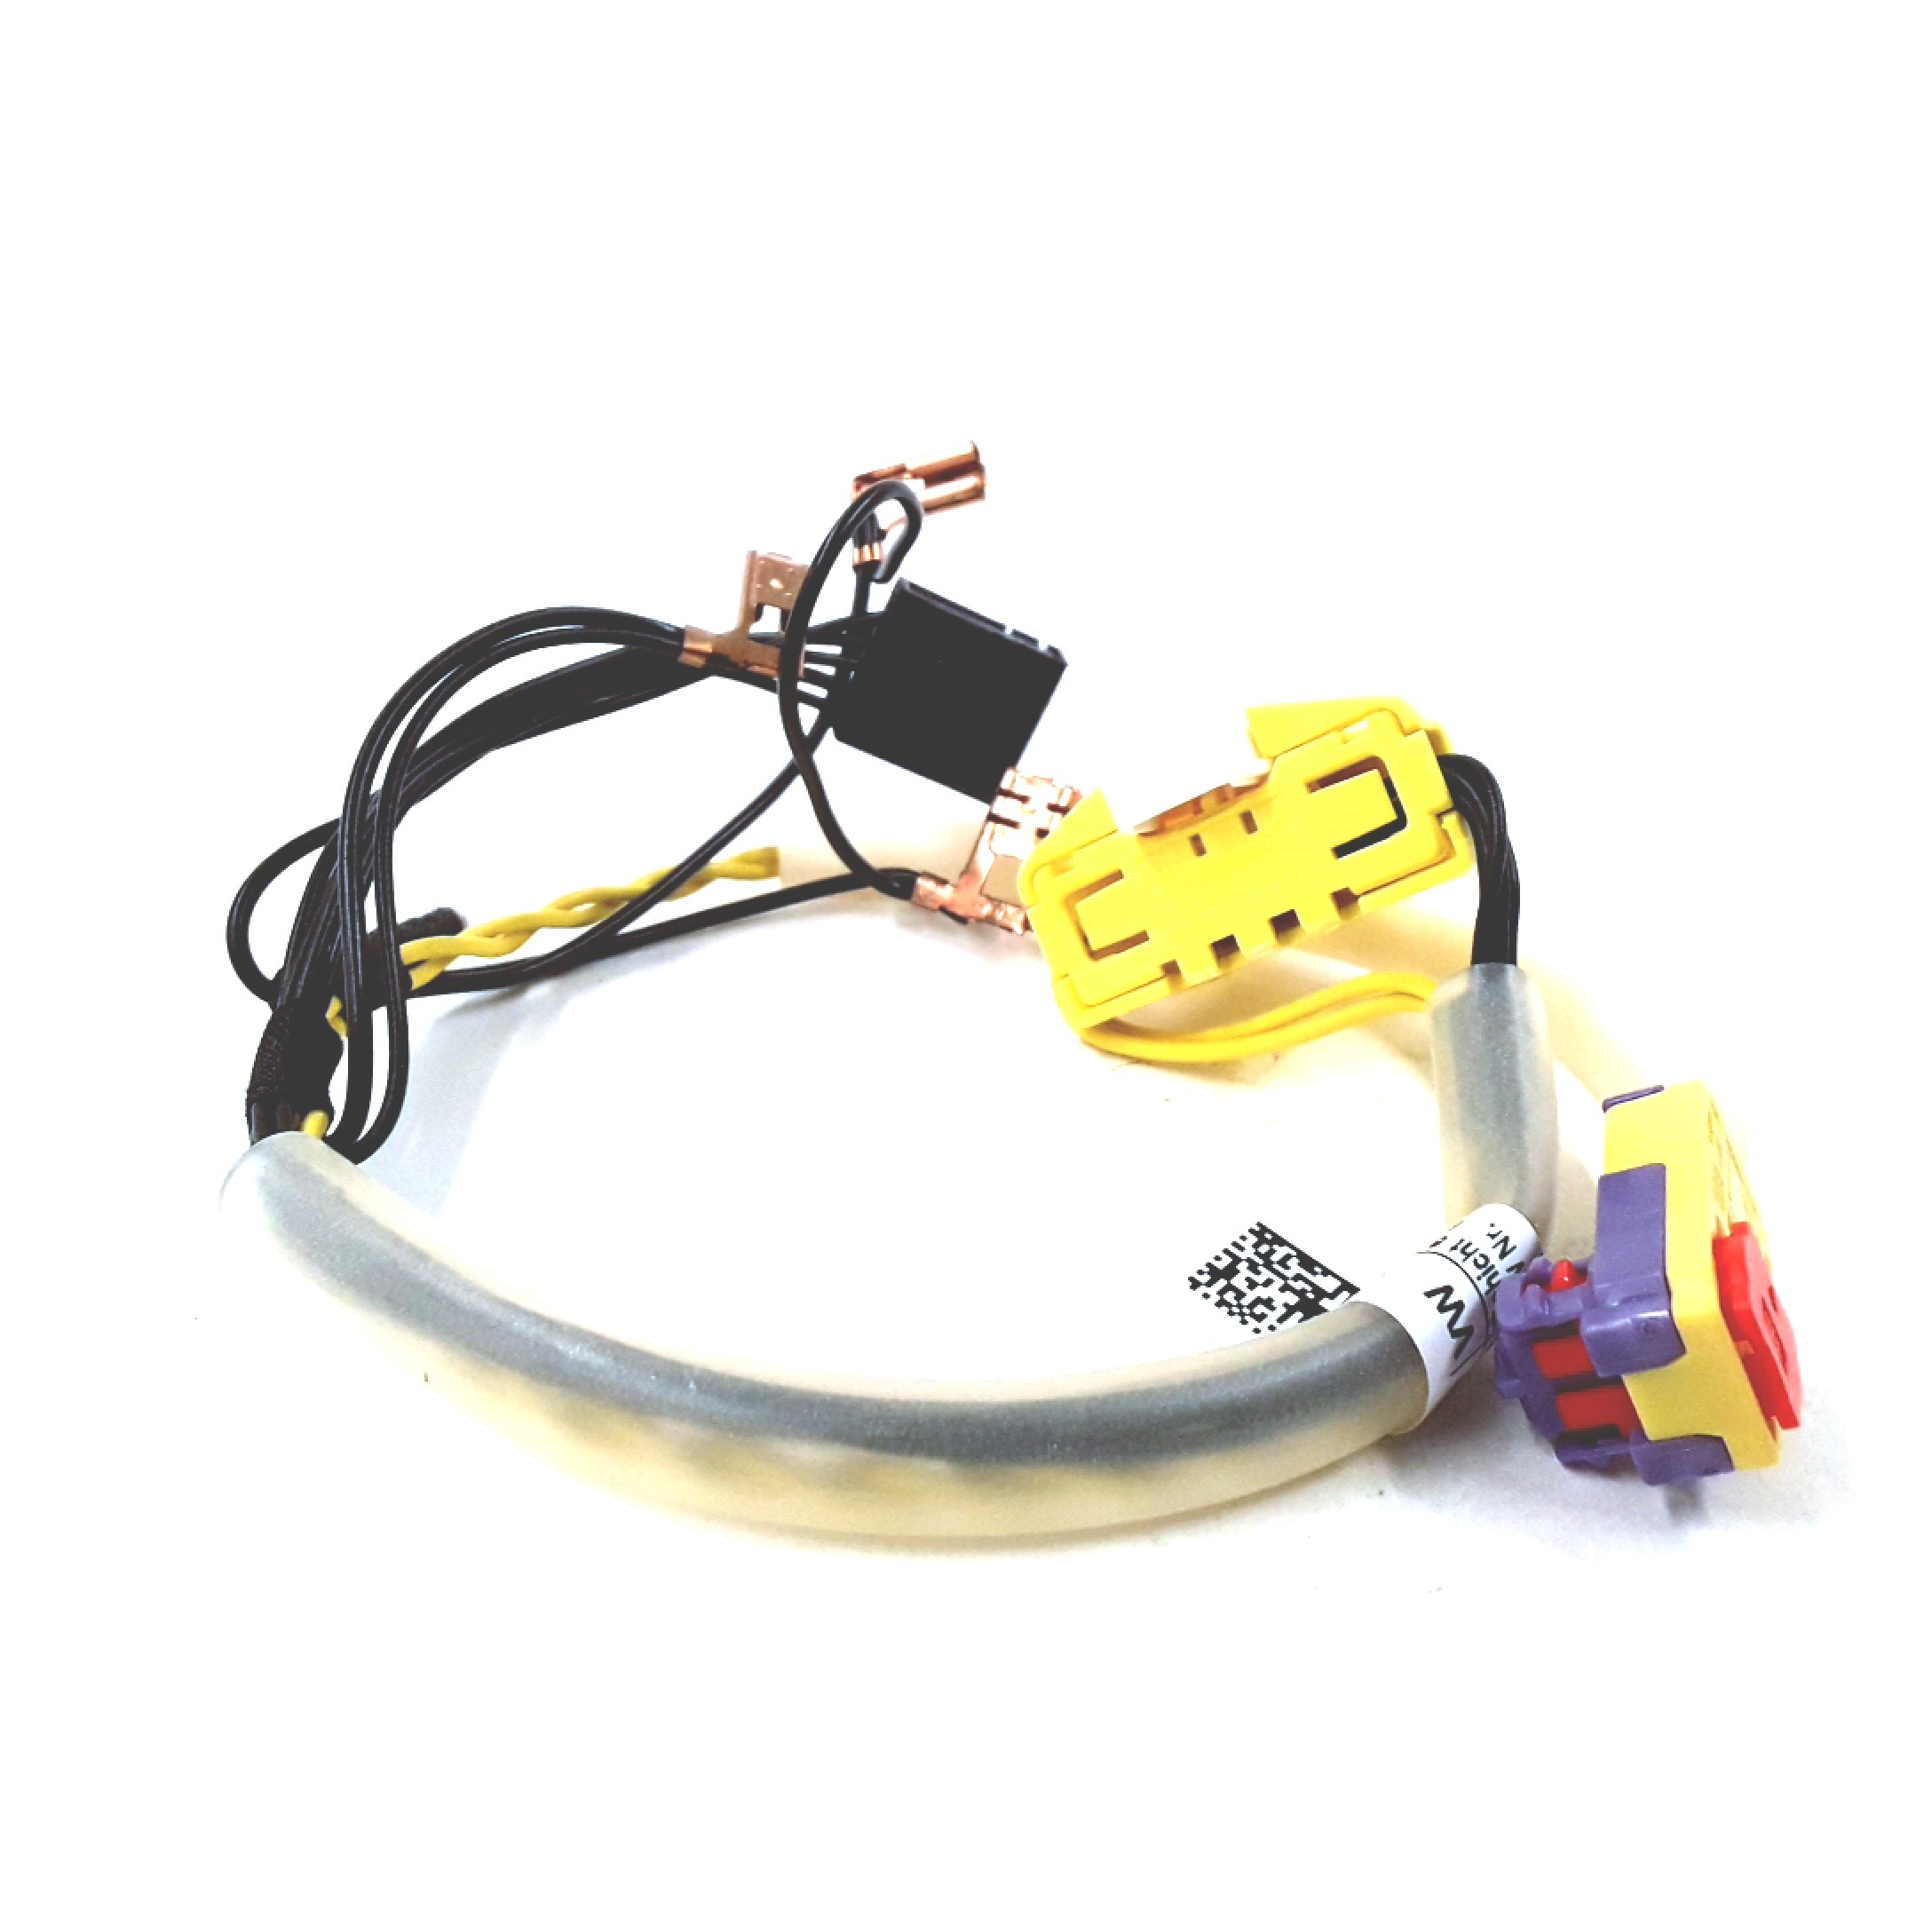 2015 Volkswagen Jetta Gli Air Bag Wiring Harness